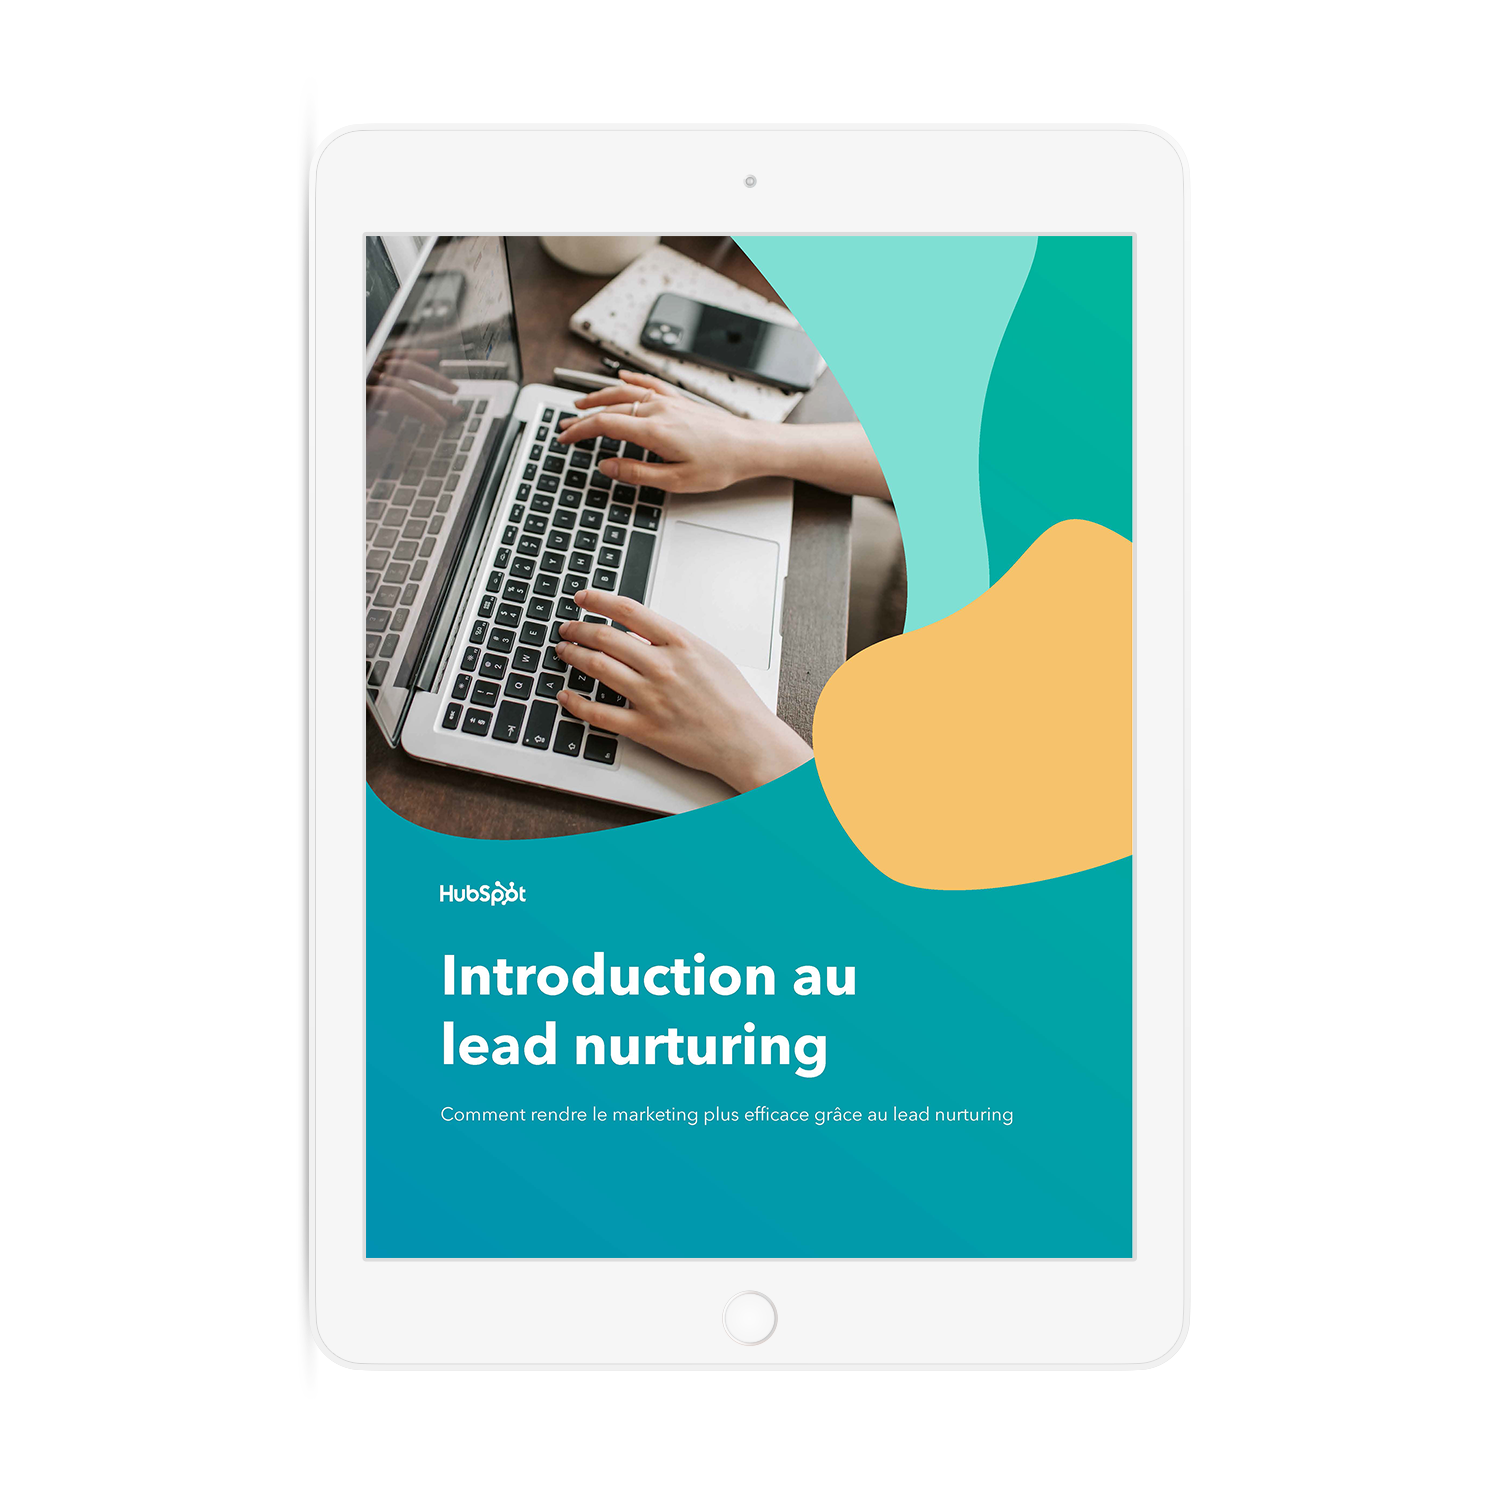 Introduction au lead nurturing